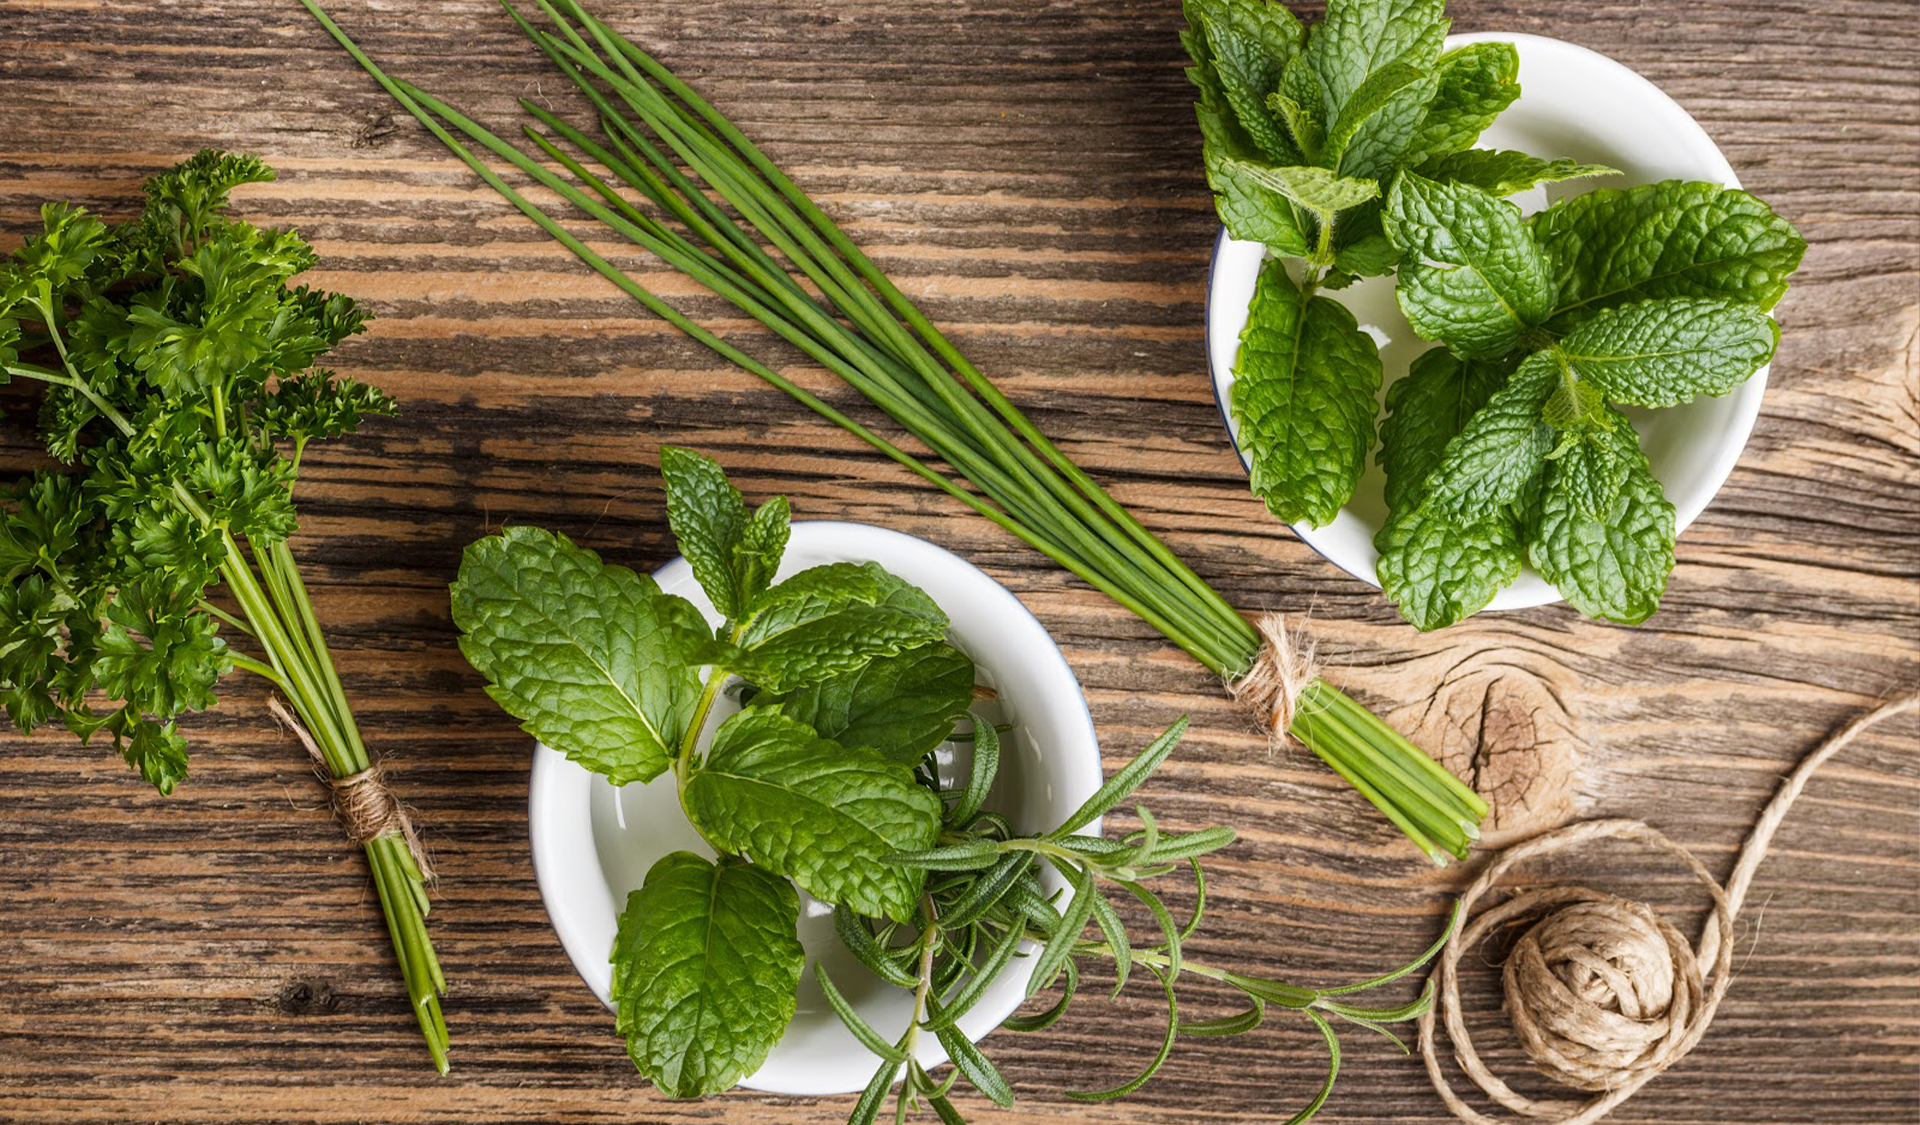 6 Must Have Summer Herbs